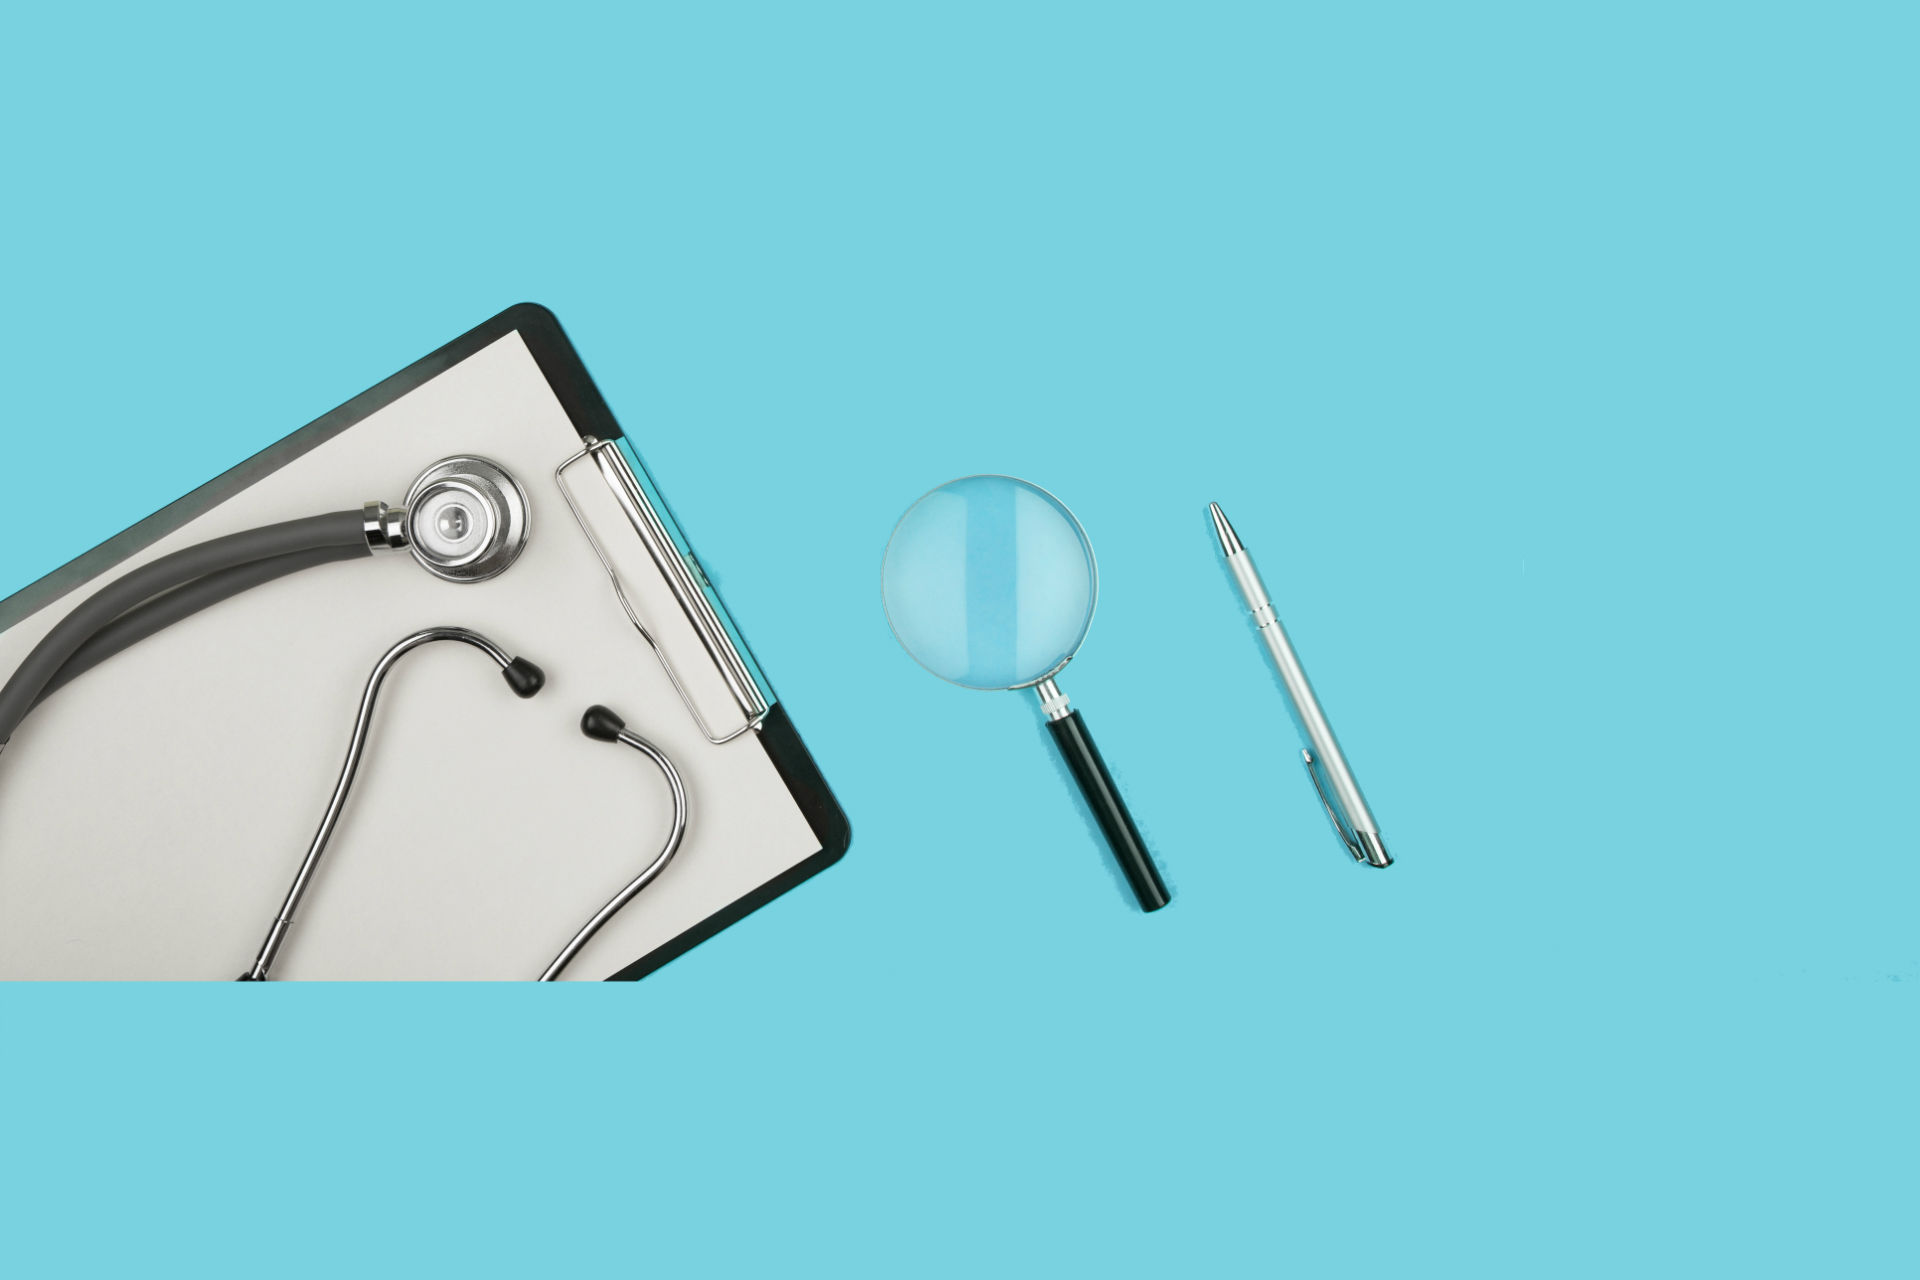 image of stethoscope and magnifying glass